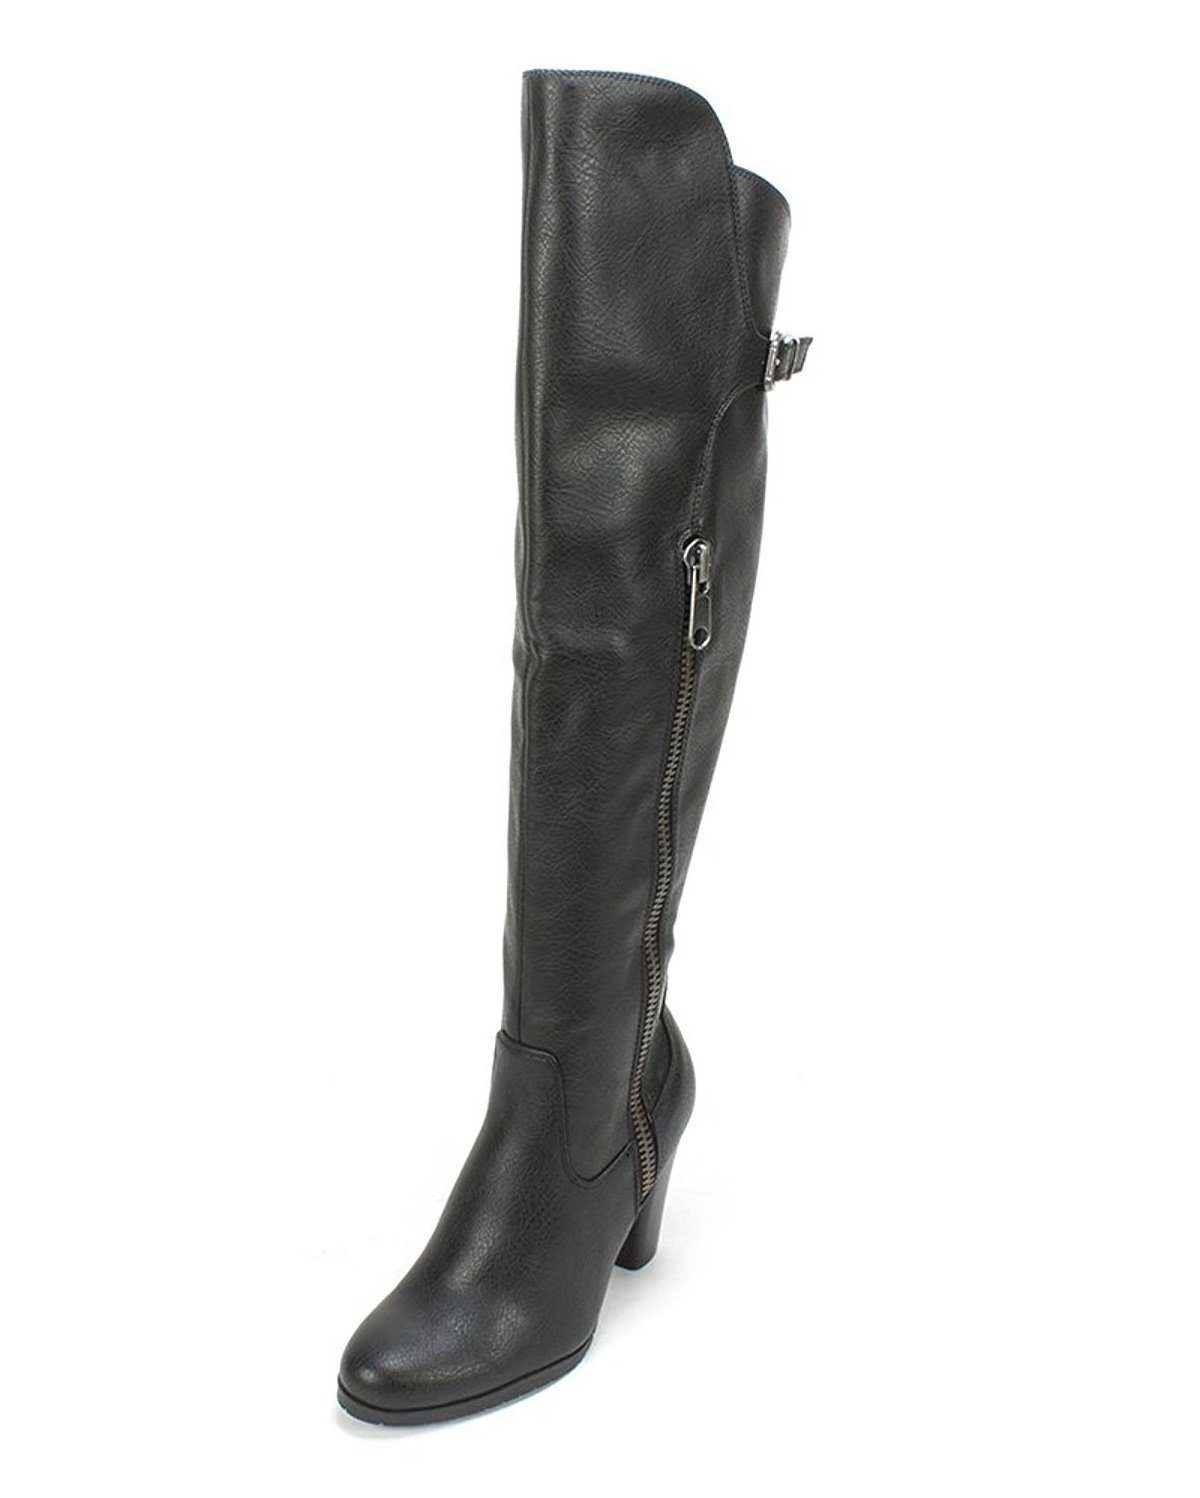 0cd5247e71c WOMEN S OVER THE KNEE BOOTS